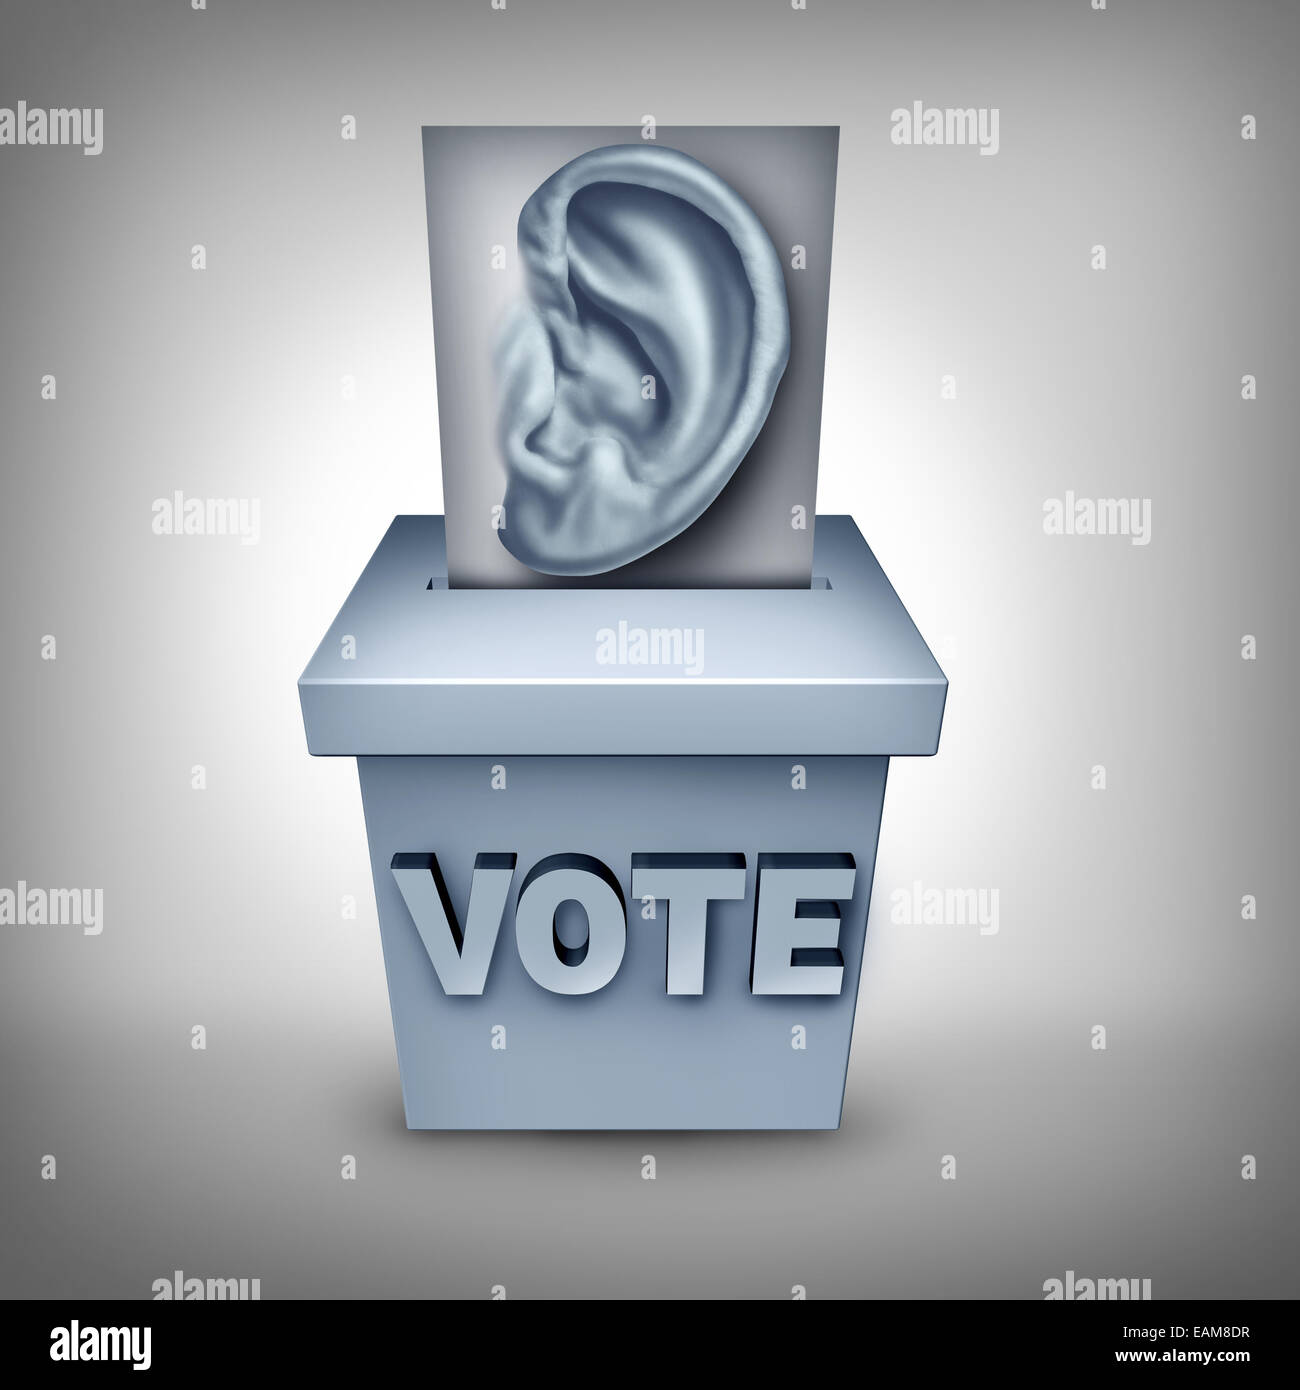 Listen to voters concept and listening to the wishes of the electorate symbol as a ballot with a human ear being - Stock Image